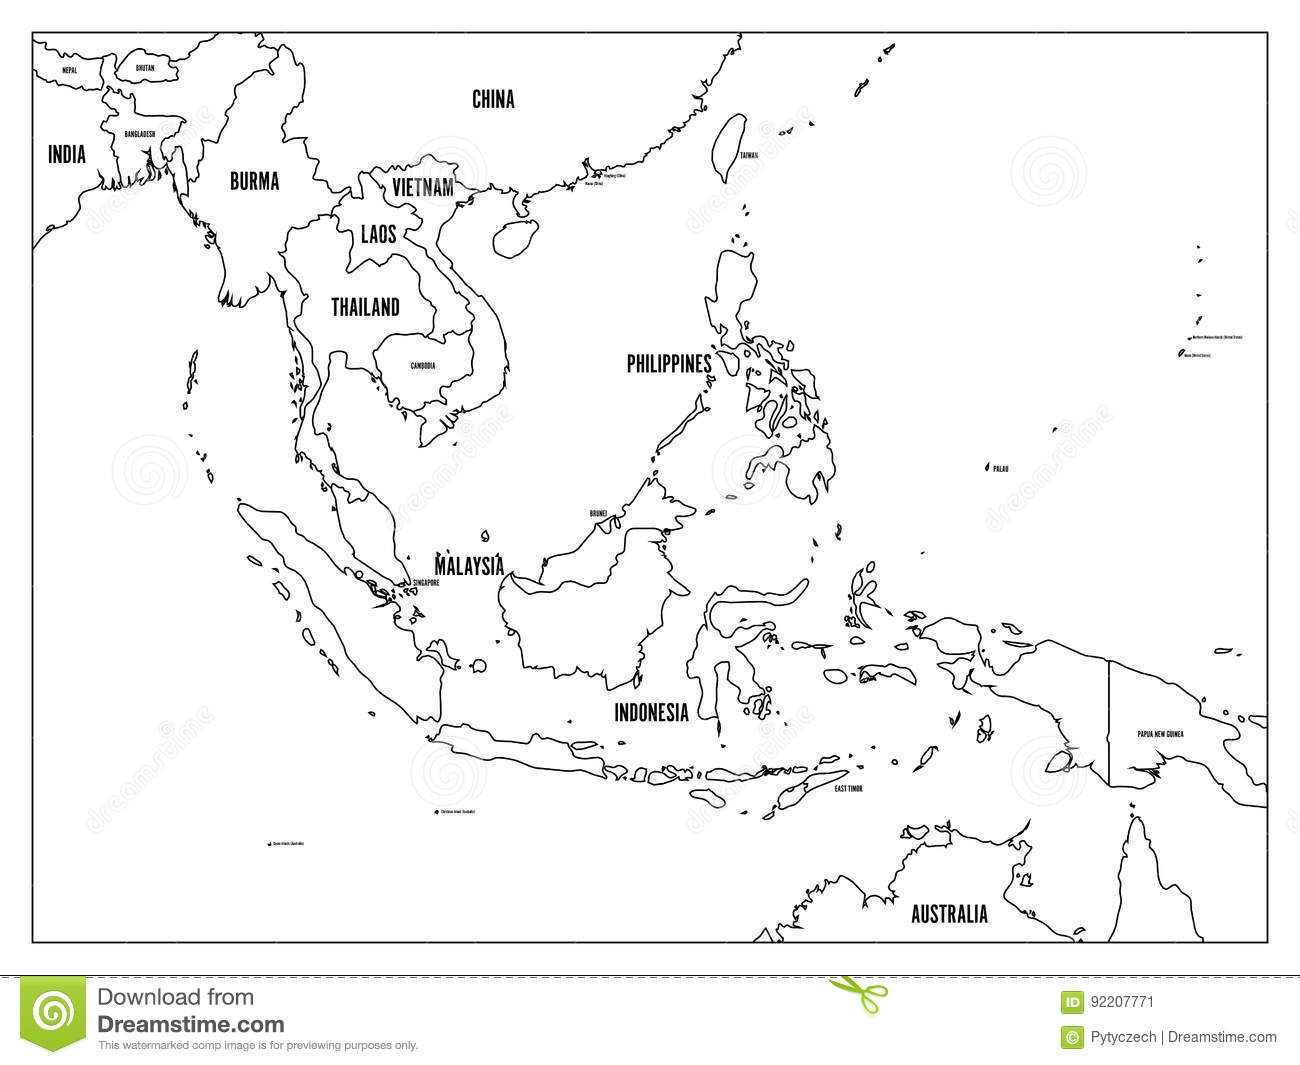 south east asia political map black outline on white background with black country name labels